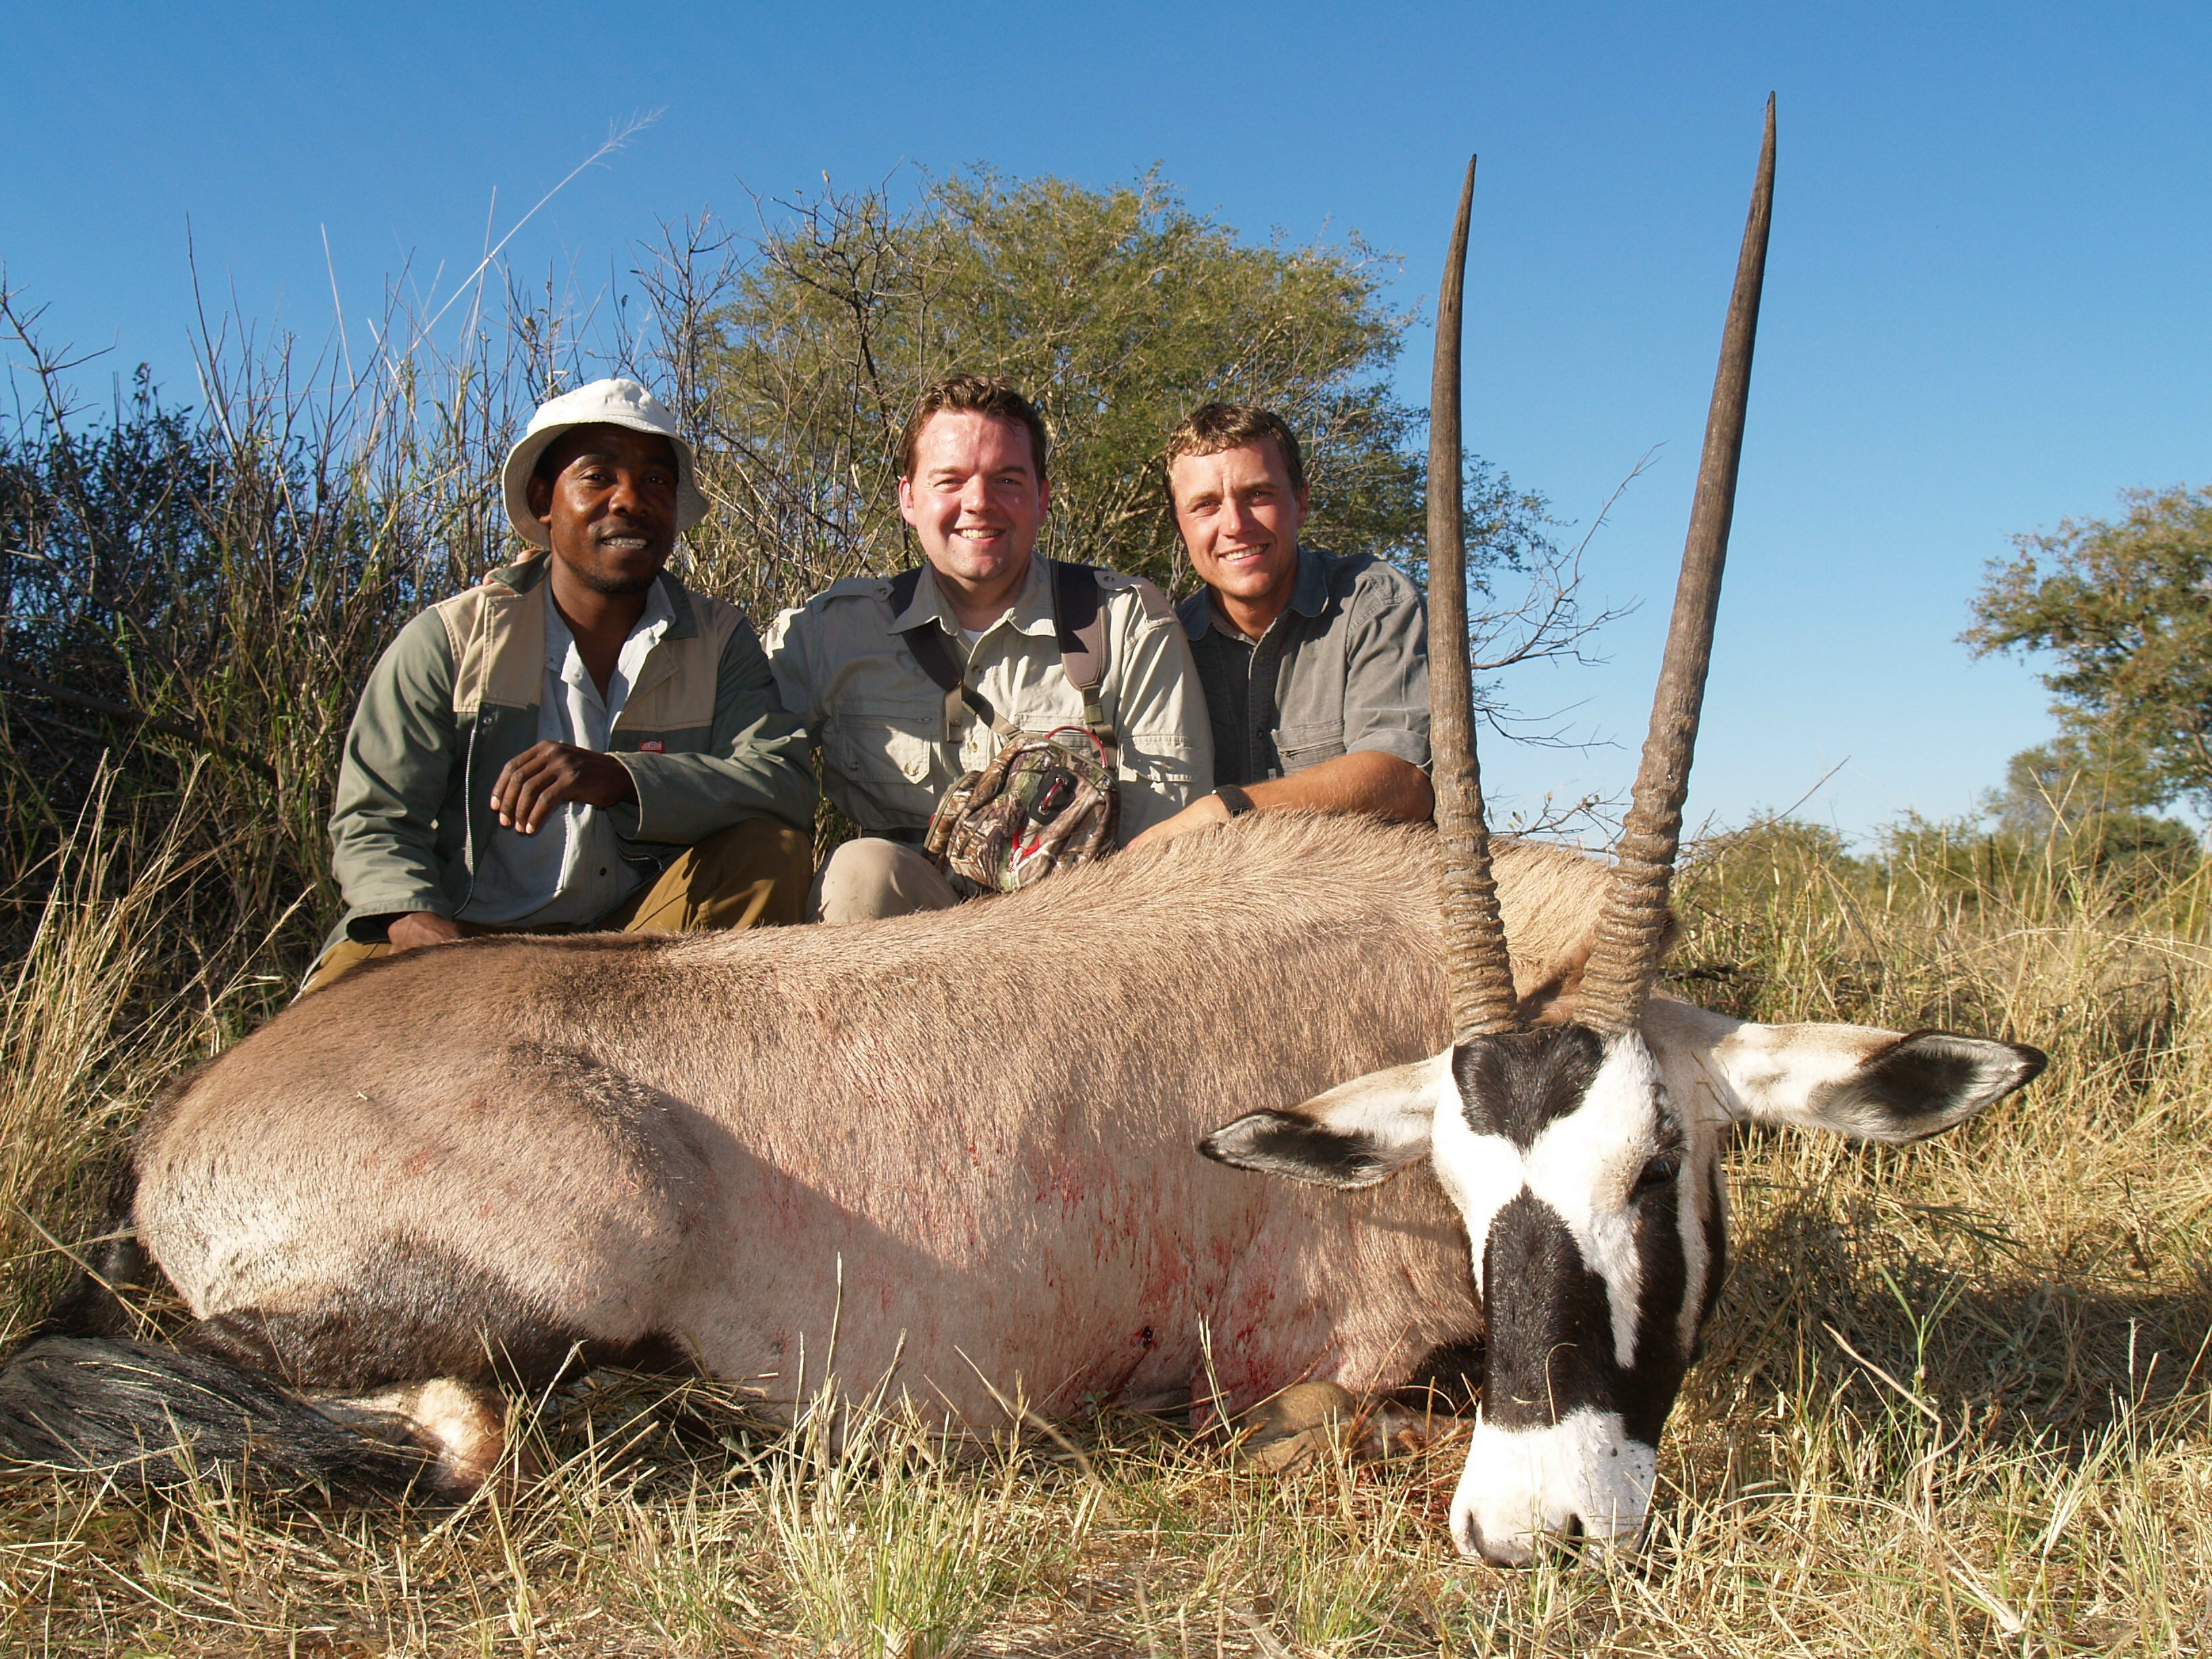 African Animals with Long Horns http://thegreatwhitehunter.wordpress.com/category/big-game/international/africa/